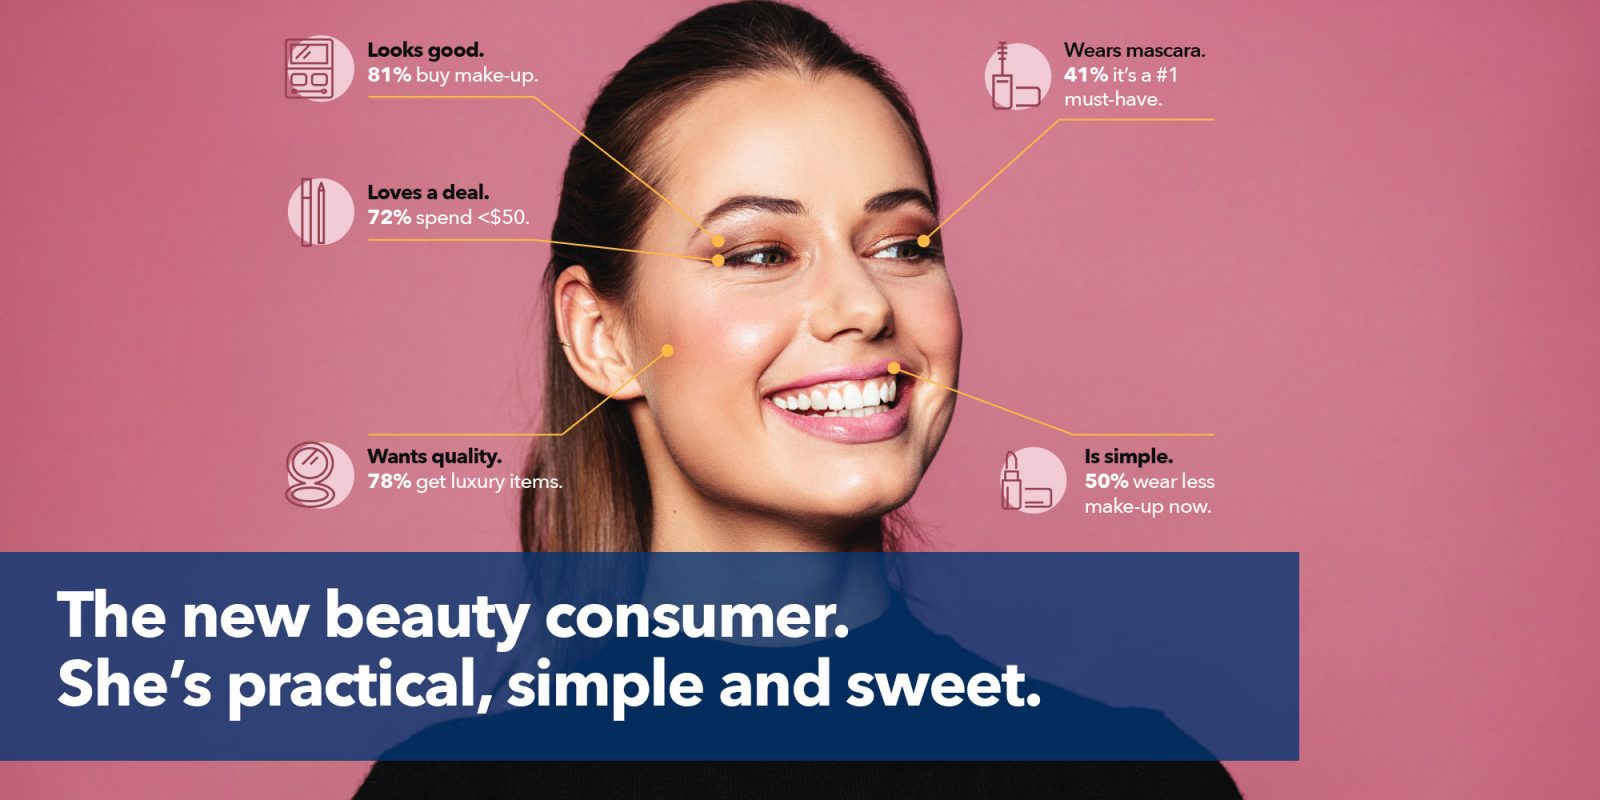 The new beauty consumer